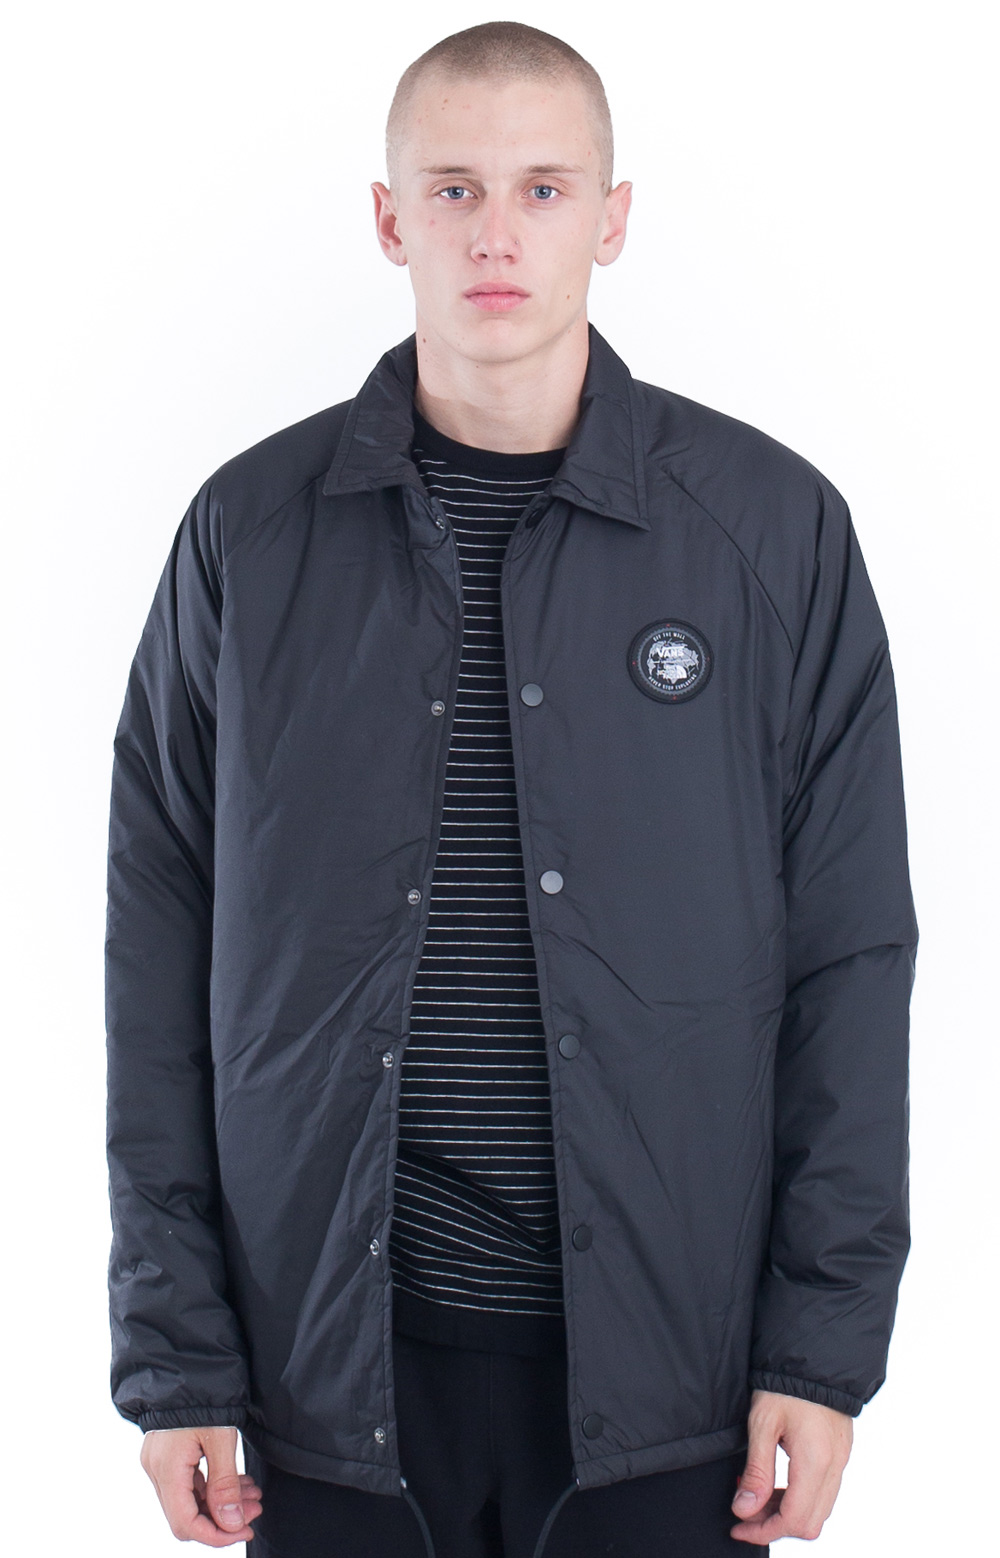 de3c8d9f9aeb Torrey Jacket - Black. Loading... Home · Brands · Vans x The North Face ...